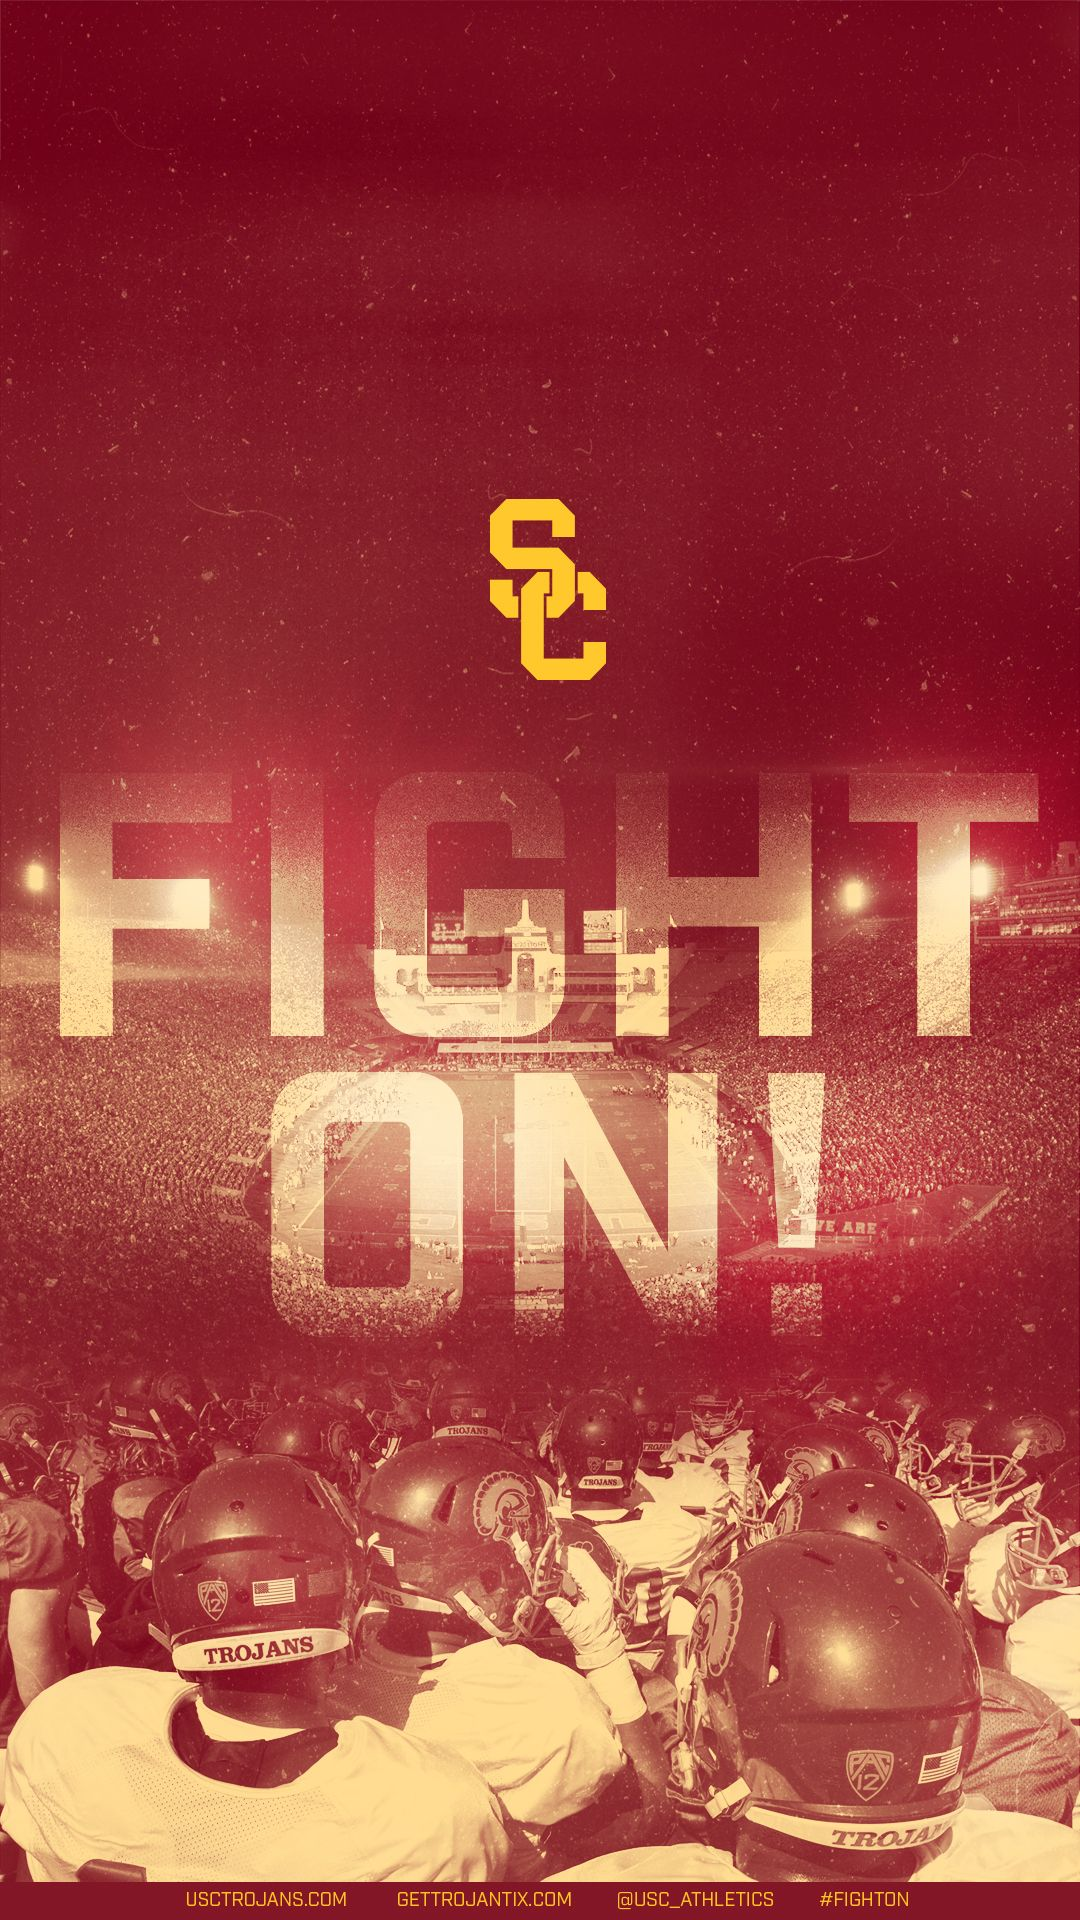 University Of Southern California Official Athletic Site Football Usc Trojans Football Usc Usc Football